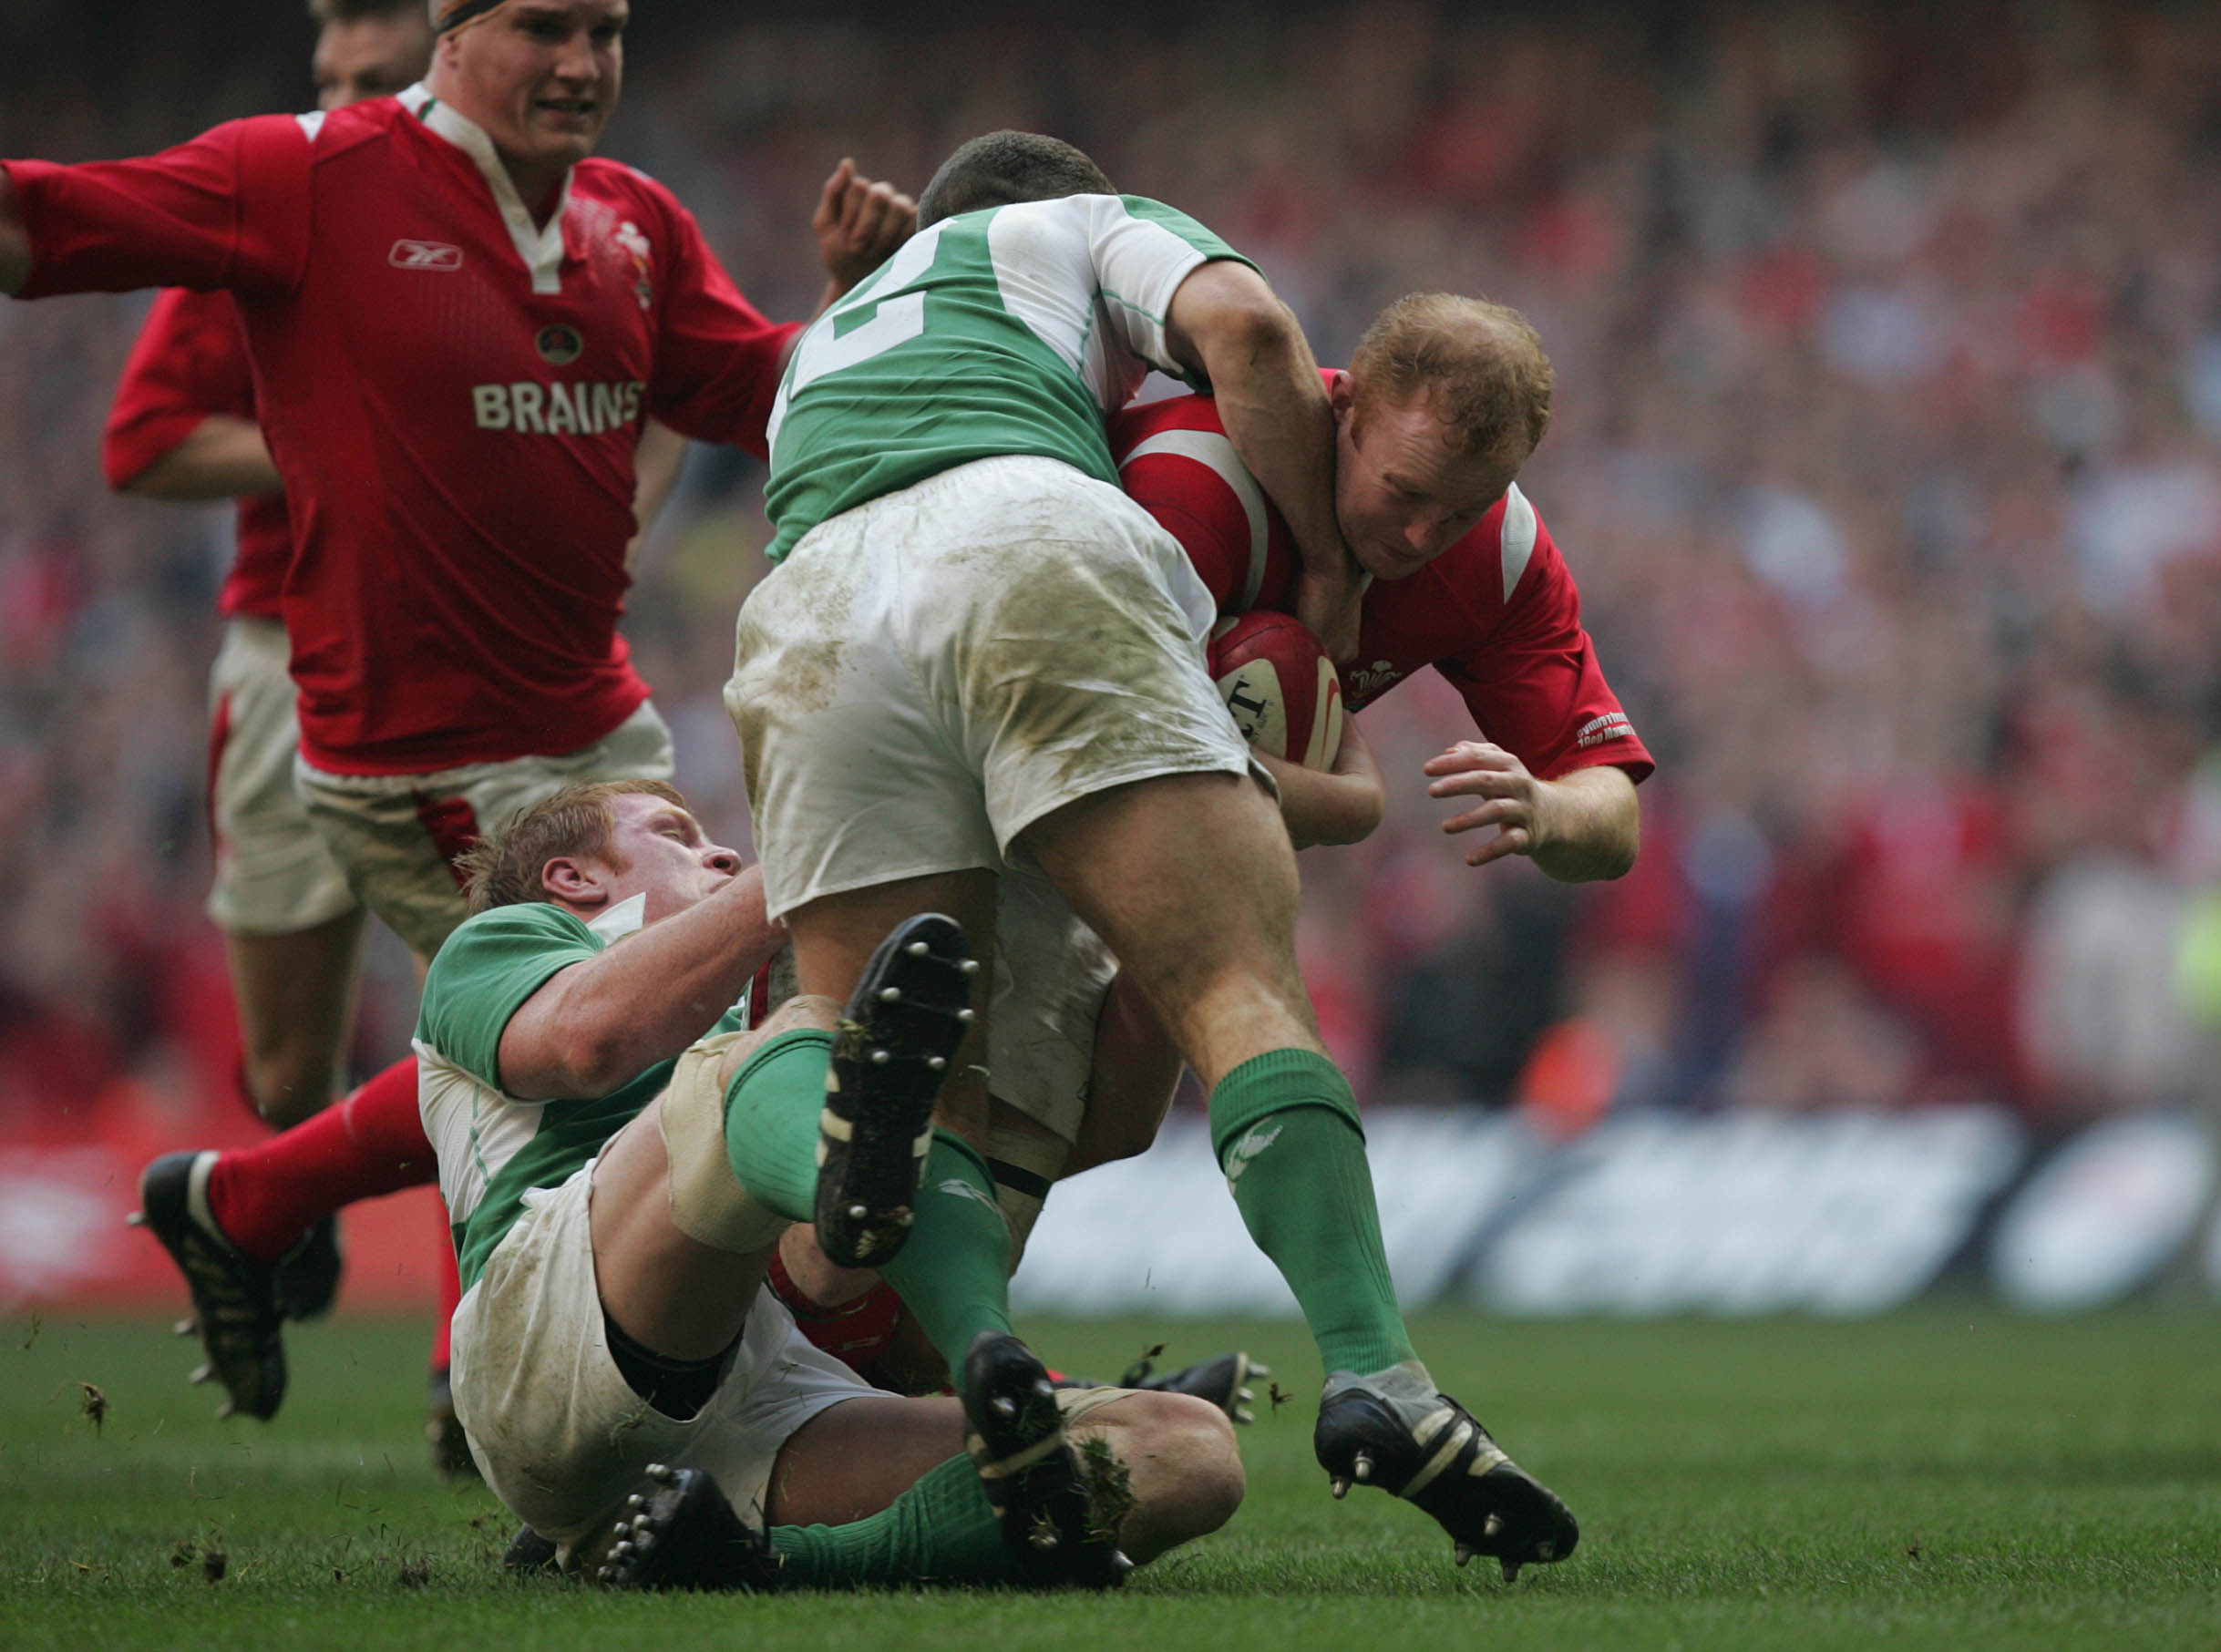 Martyn Williams tackled by Paul O'Connell and Kevin Maggs 19/3/2005